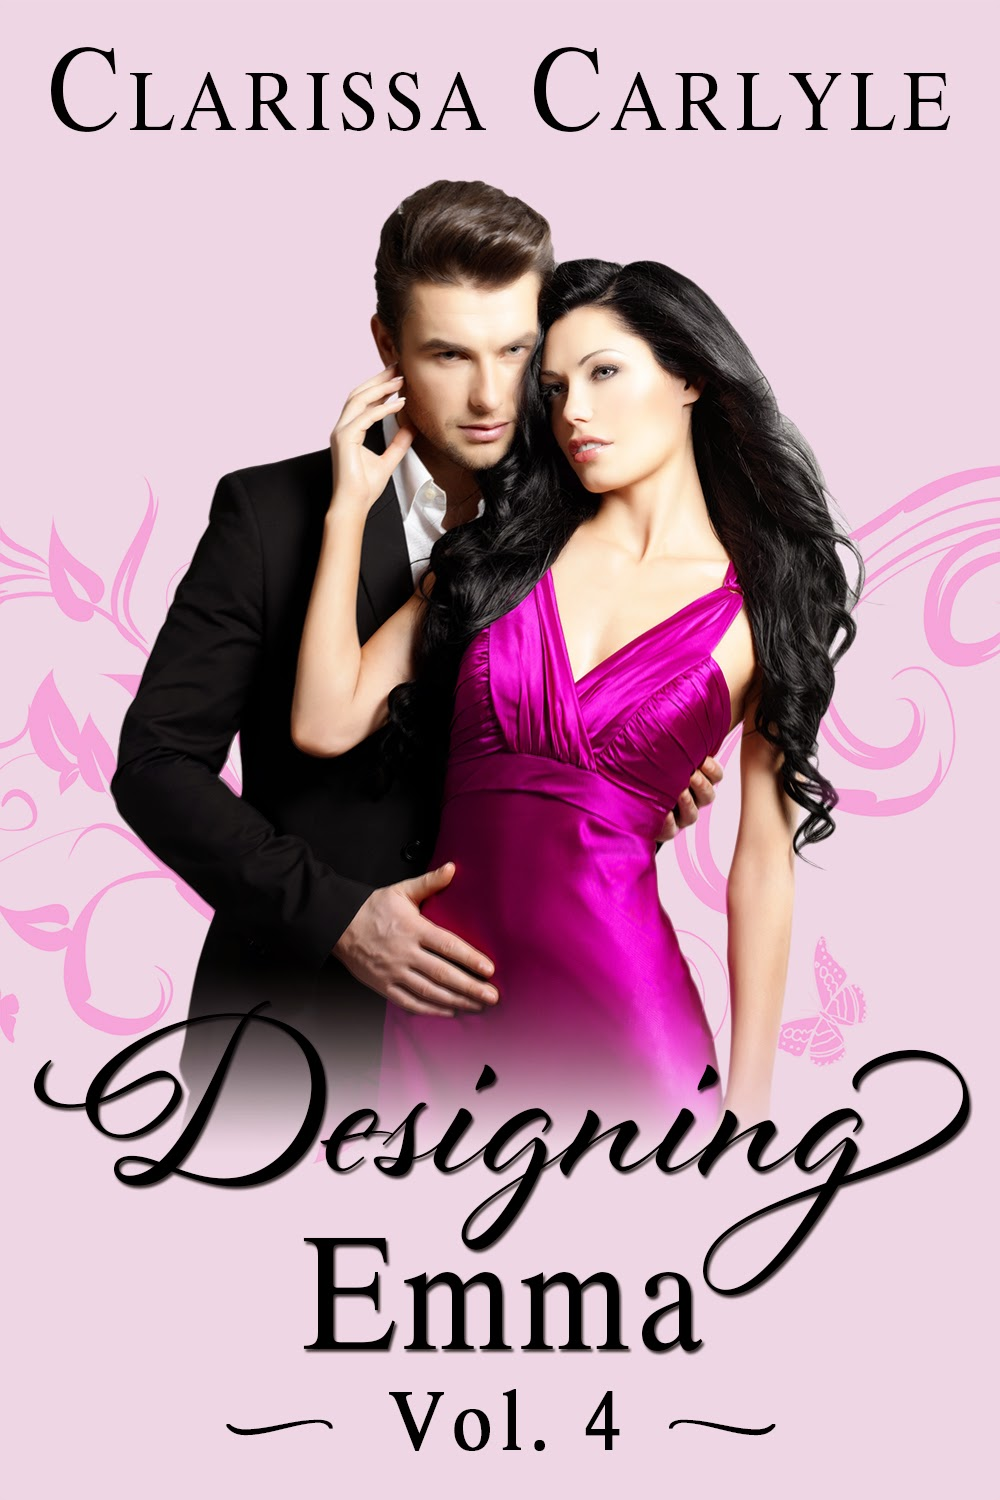 Designing Emma (Vol. 4) by Clarissa Carlyle